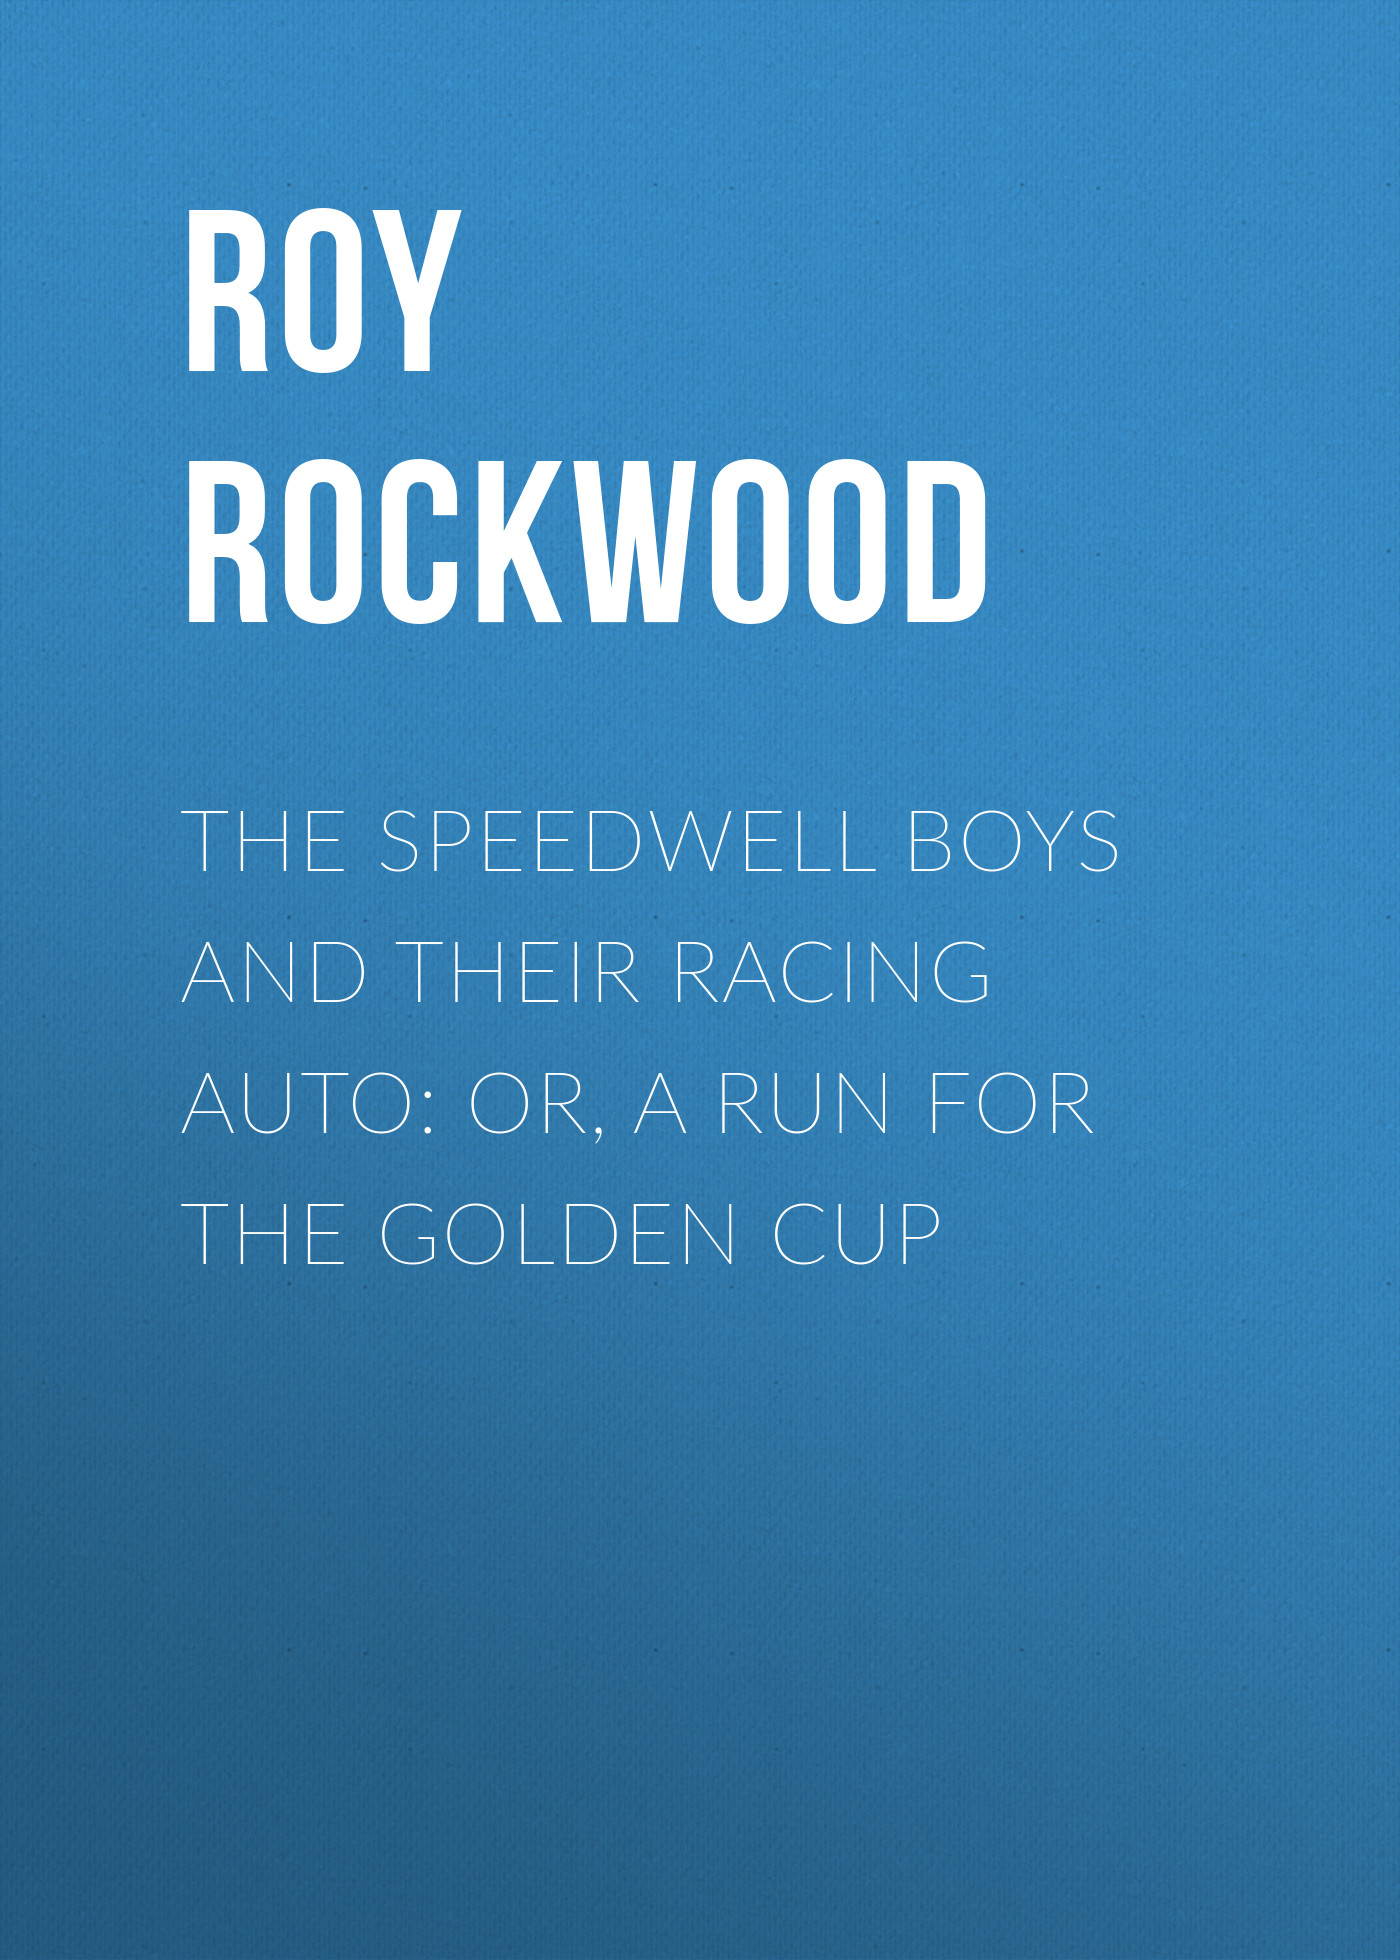 Roy Rockwood The Speedwell Boys and Their Racing Auto: or, A Run for the Golden Cup dmitrii emets tanya grotter and the golden leech